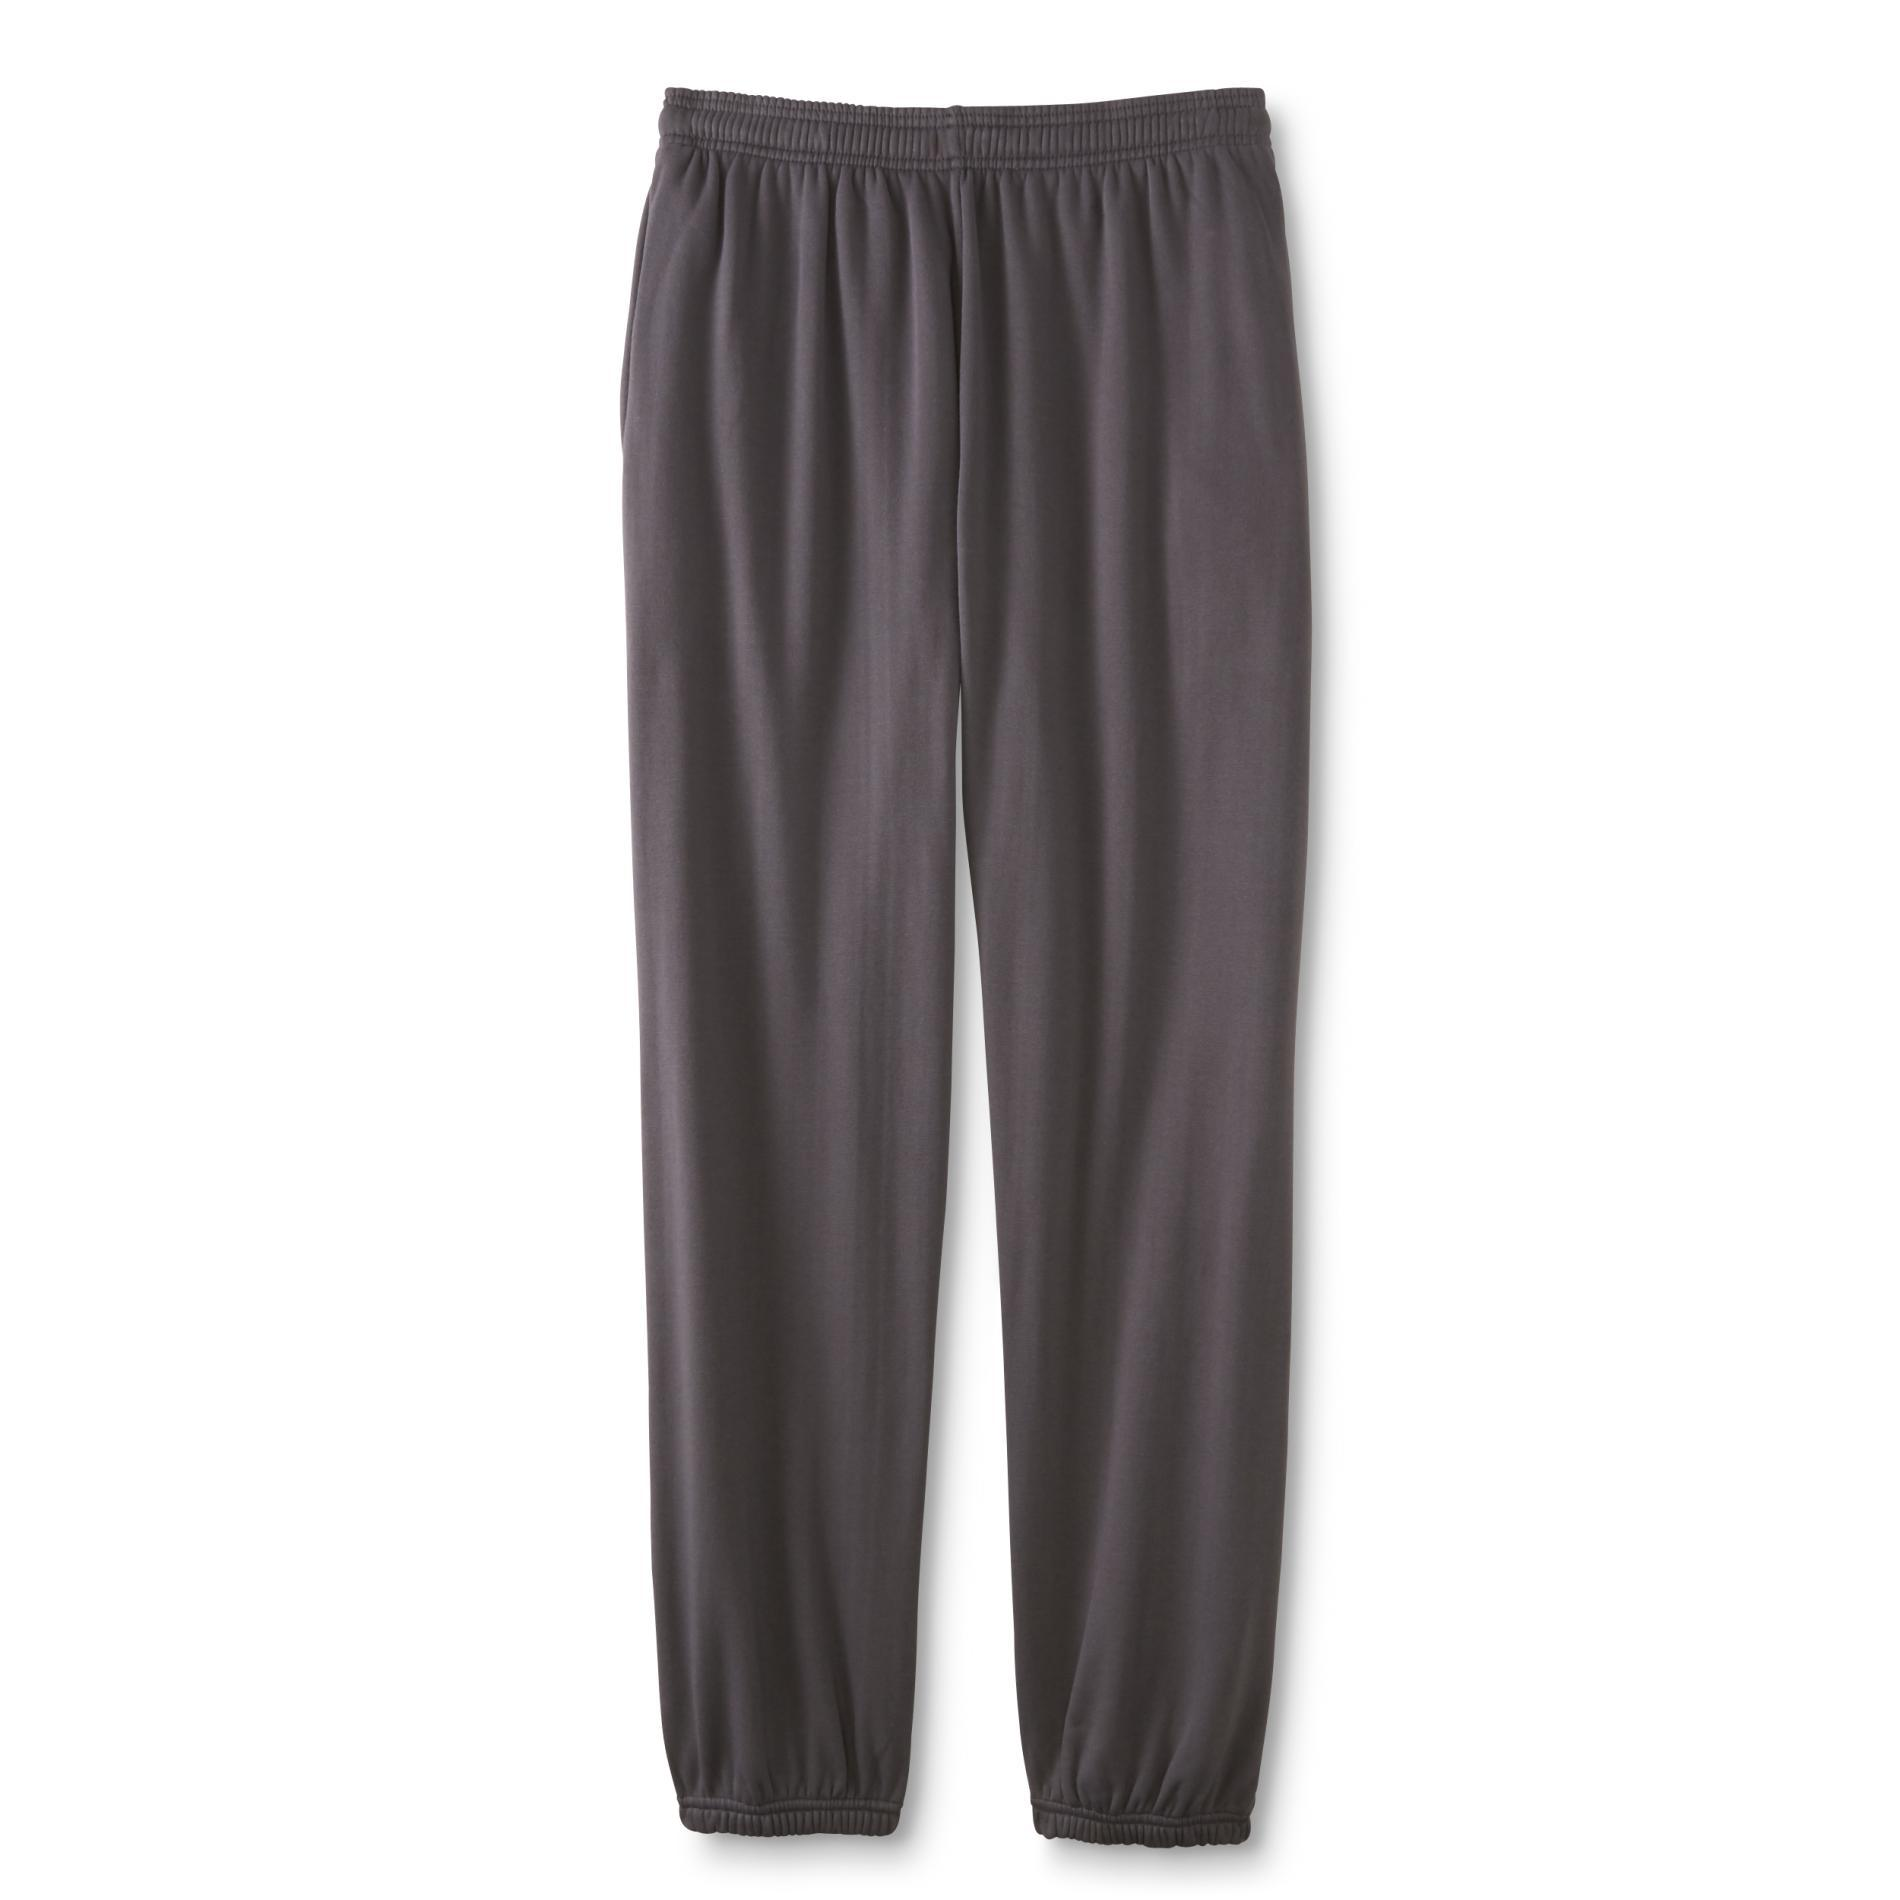 Athletech Men's Athletic Sweatpants